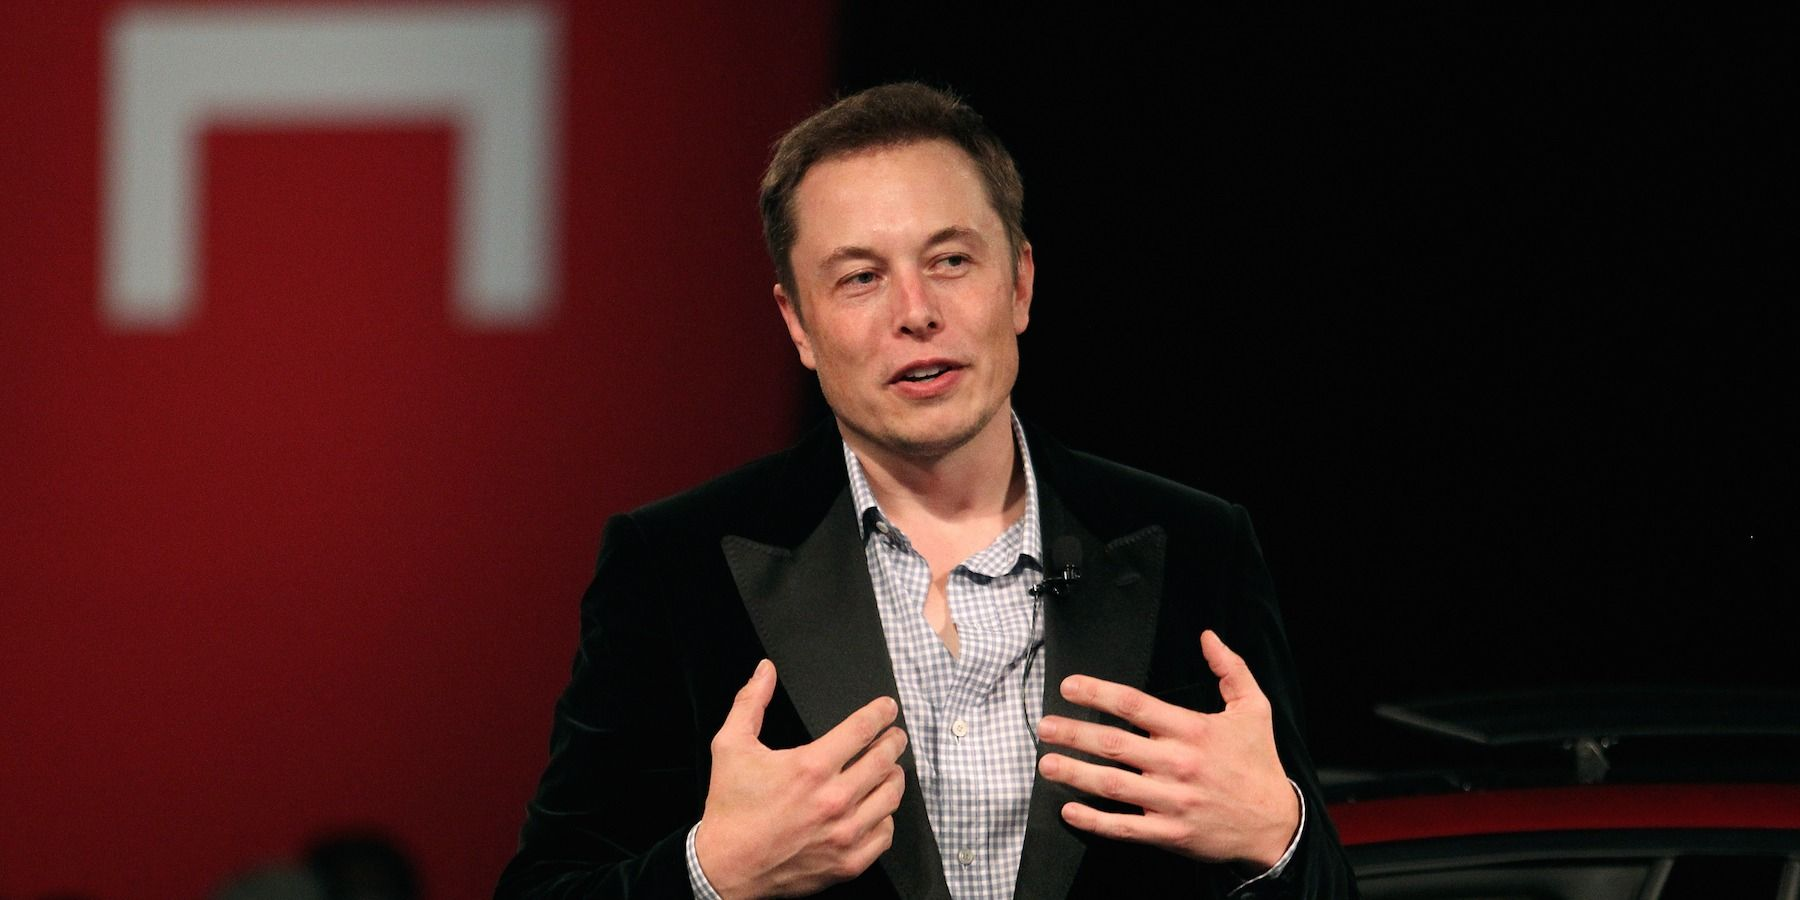 Elon Musk says destroying life on earth with fossil fuel global warming is the dumbest experiment in history! See http://www.businessinsider.com/elon-musk-talks-fossil-fuels-with-wait-but-why-2015-8